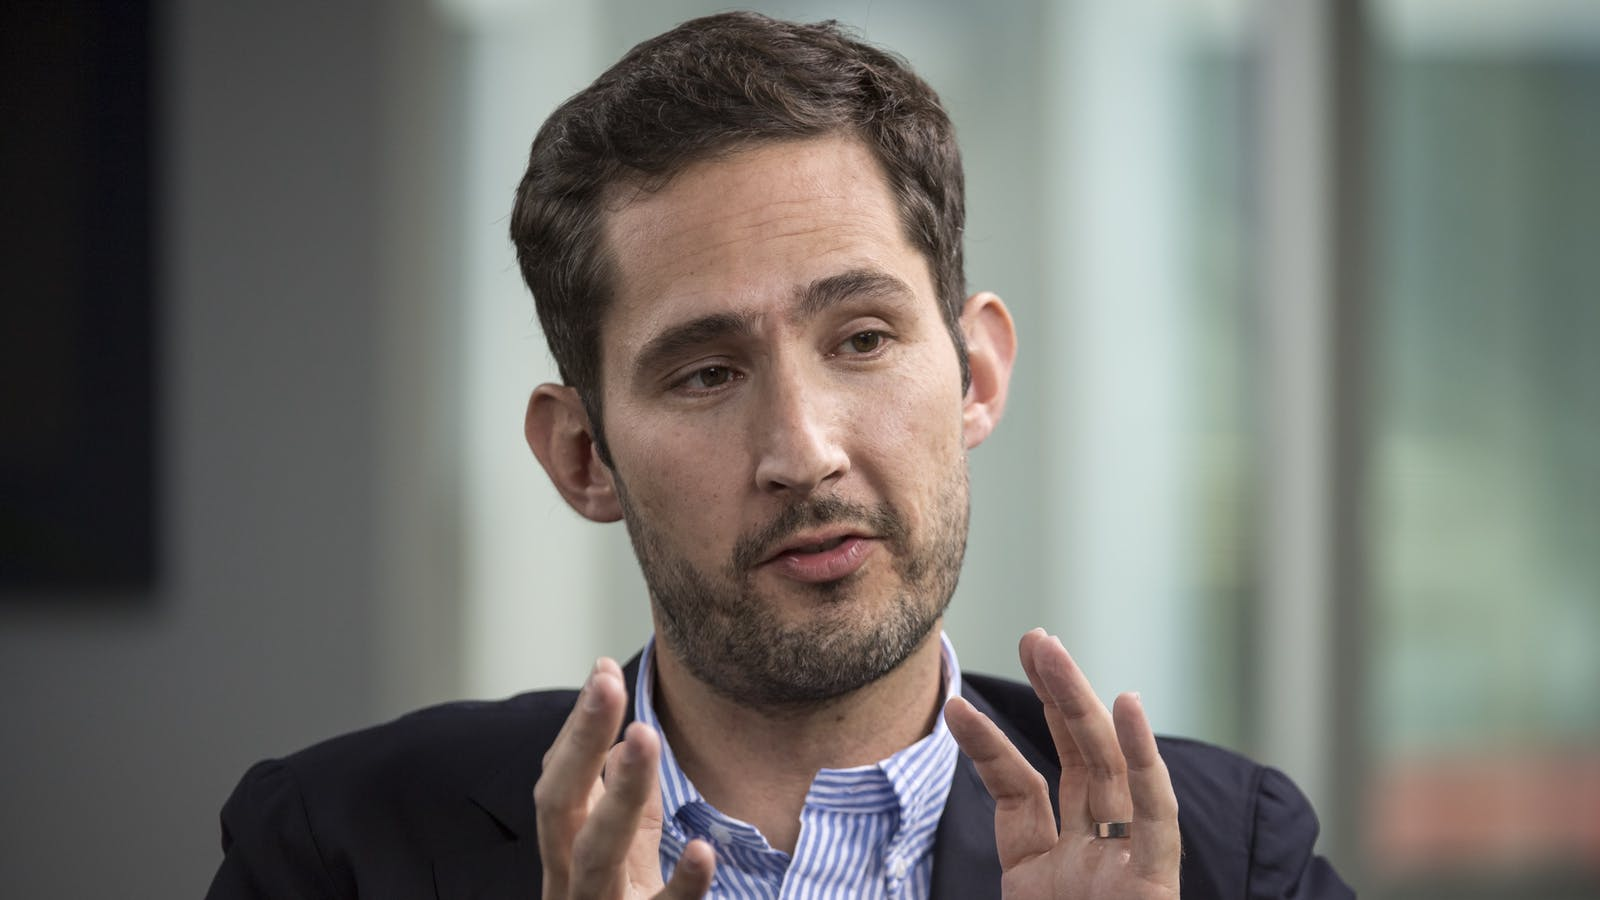 Instagram CEO Kevin Systrom. Photo by Bloomberg.